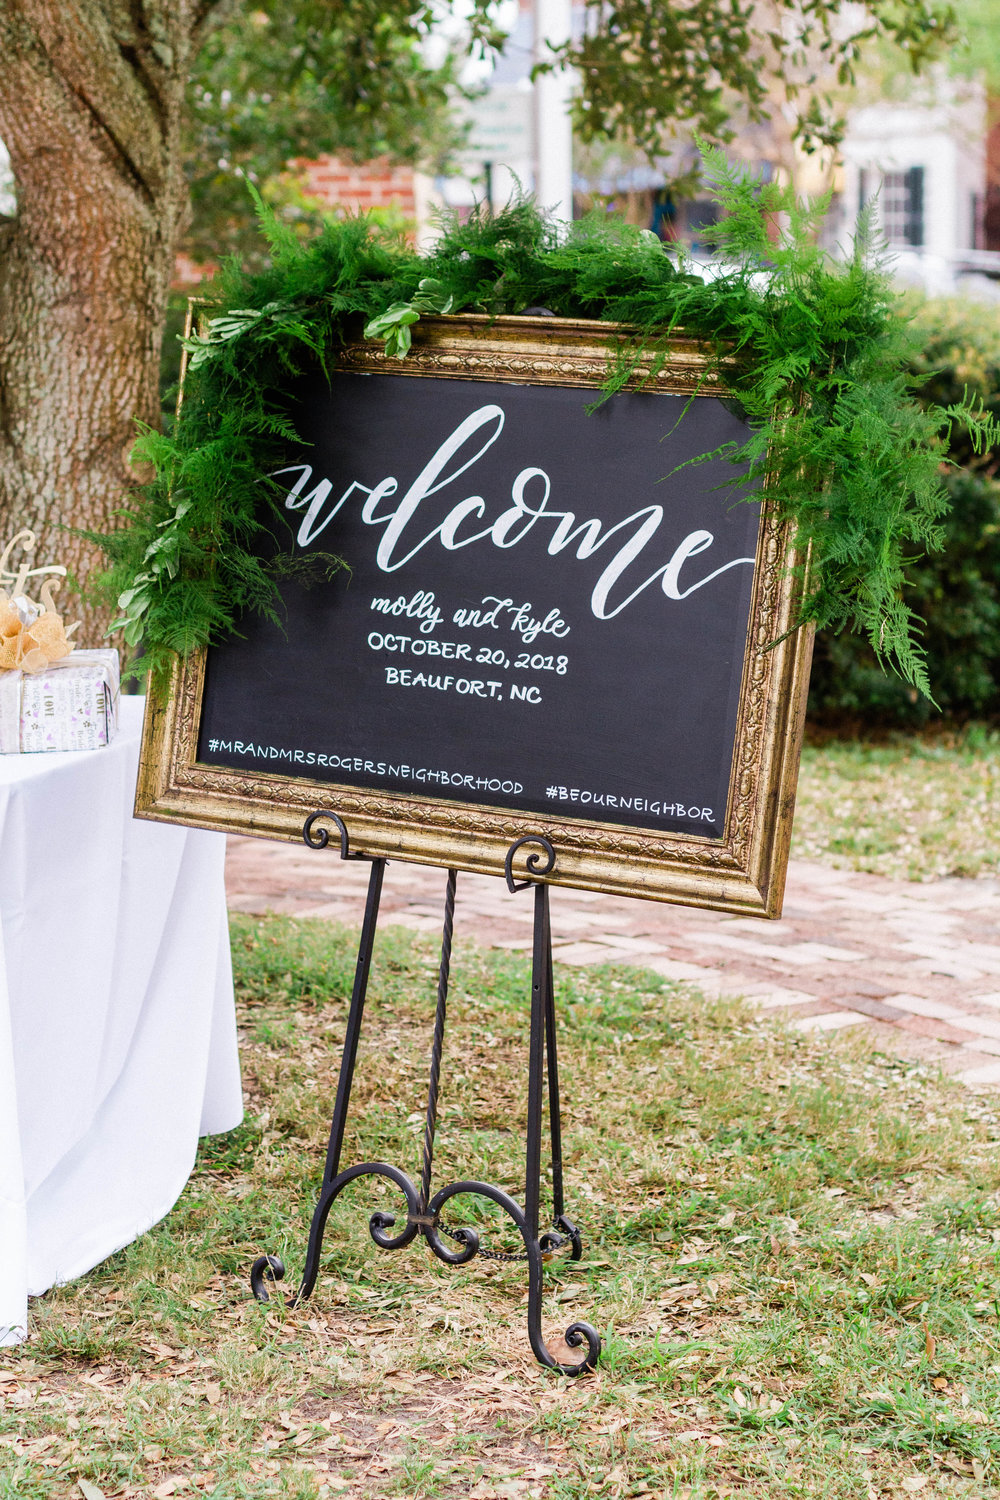 Signage - From welcome signs to seating charts this is where your personality and creativity can really come through in your wedding details. Anything is possible when it comes to signage for your event!